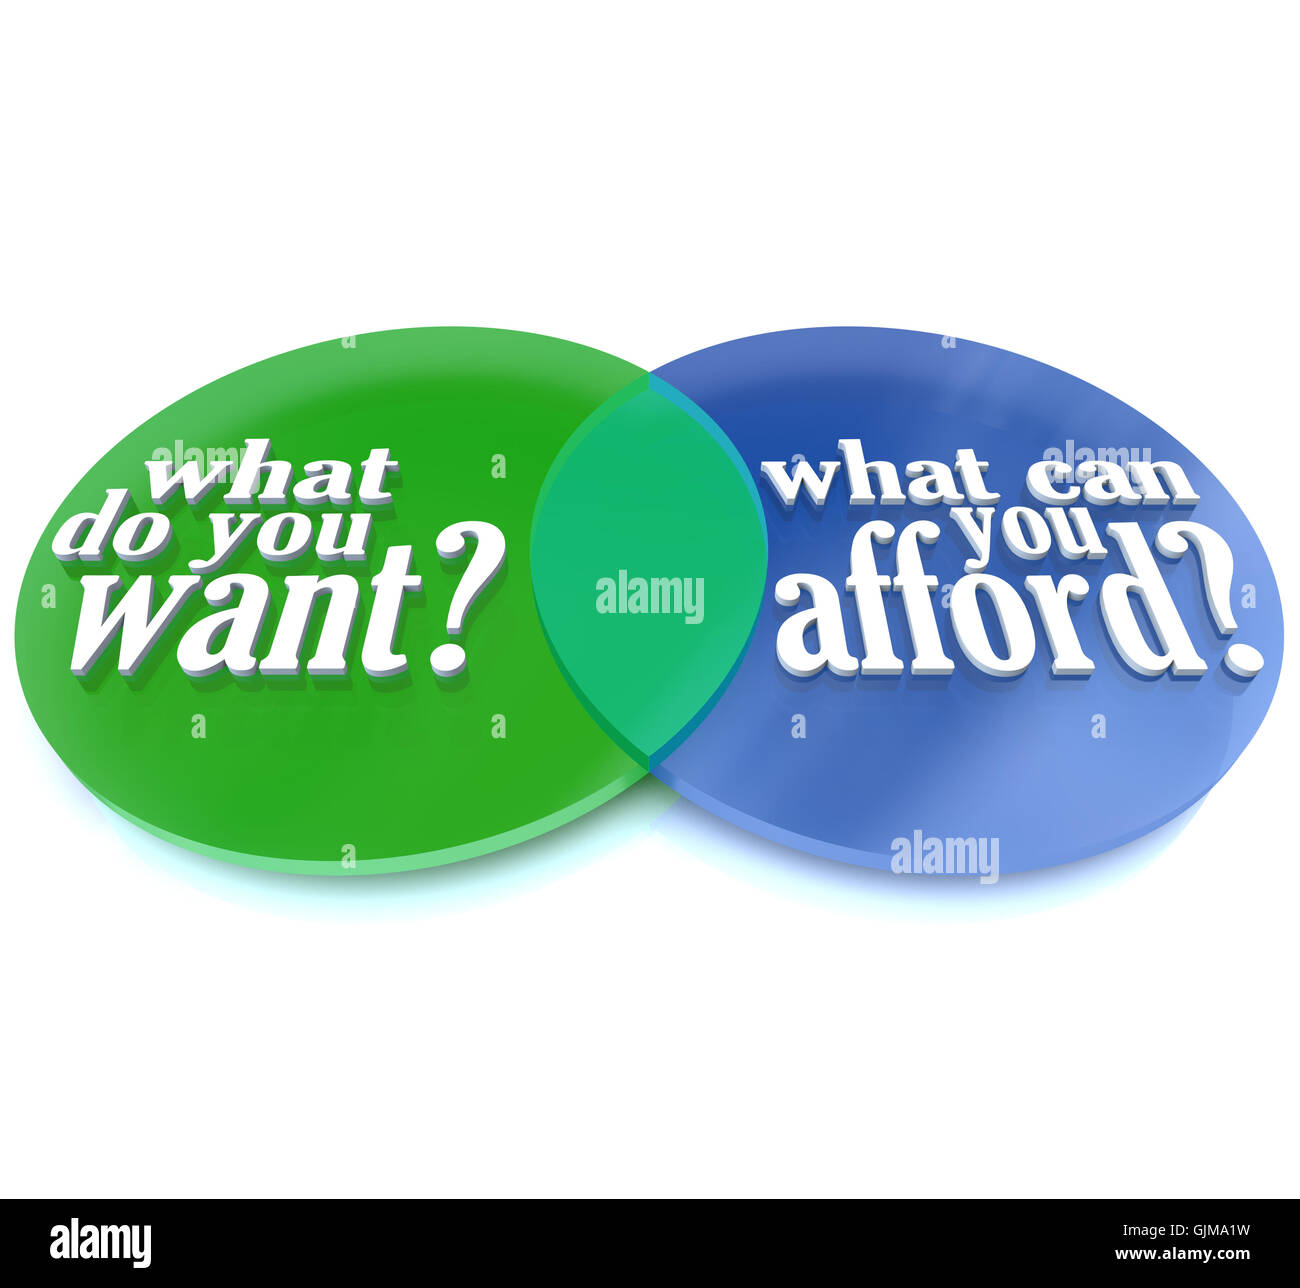 What Do You Want vs Can You Afford Venn Diagram - Stock Image